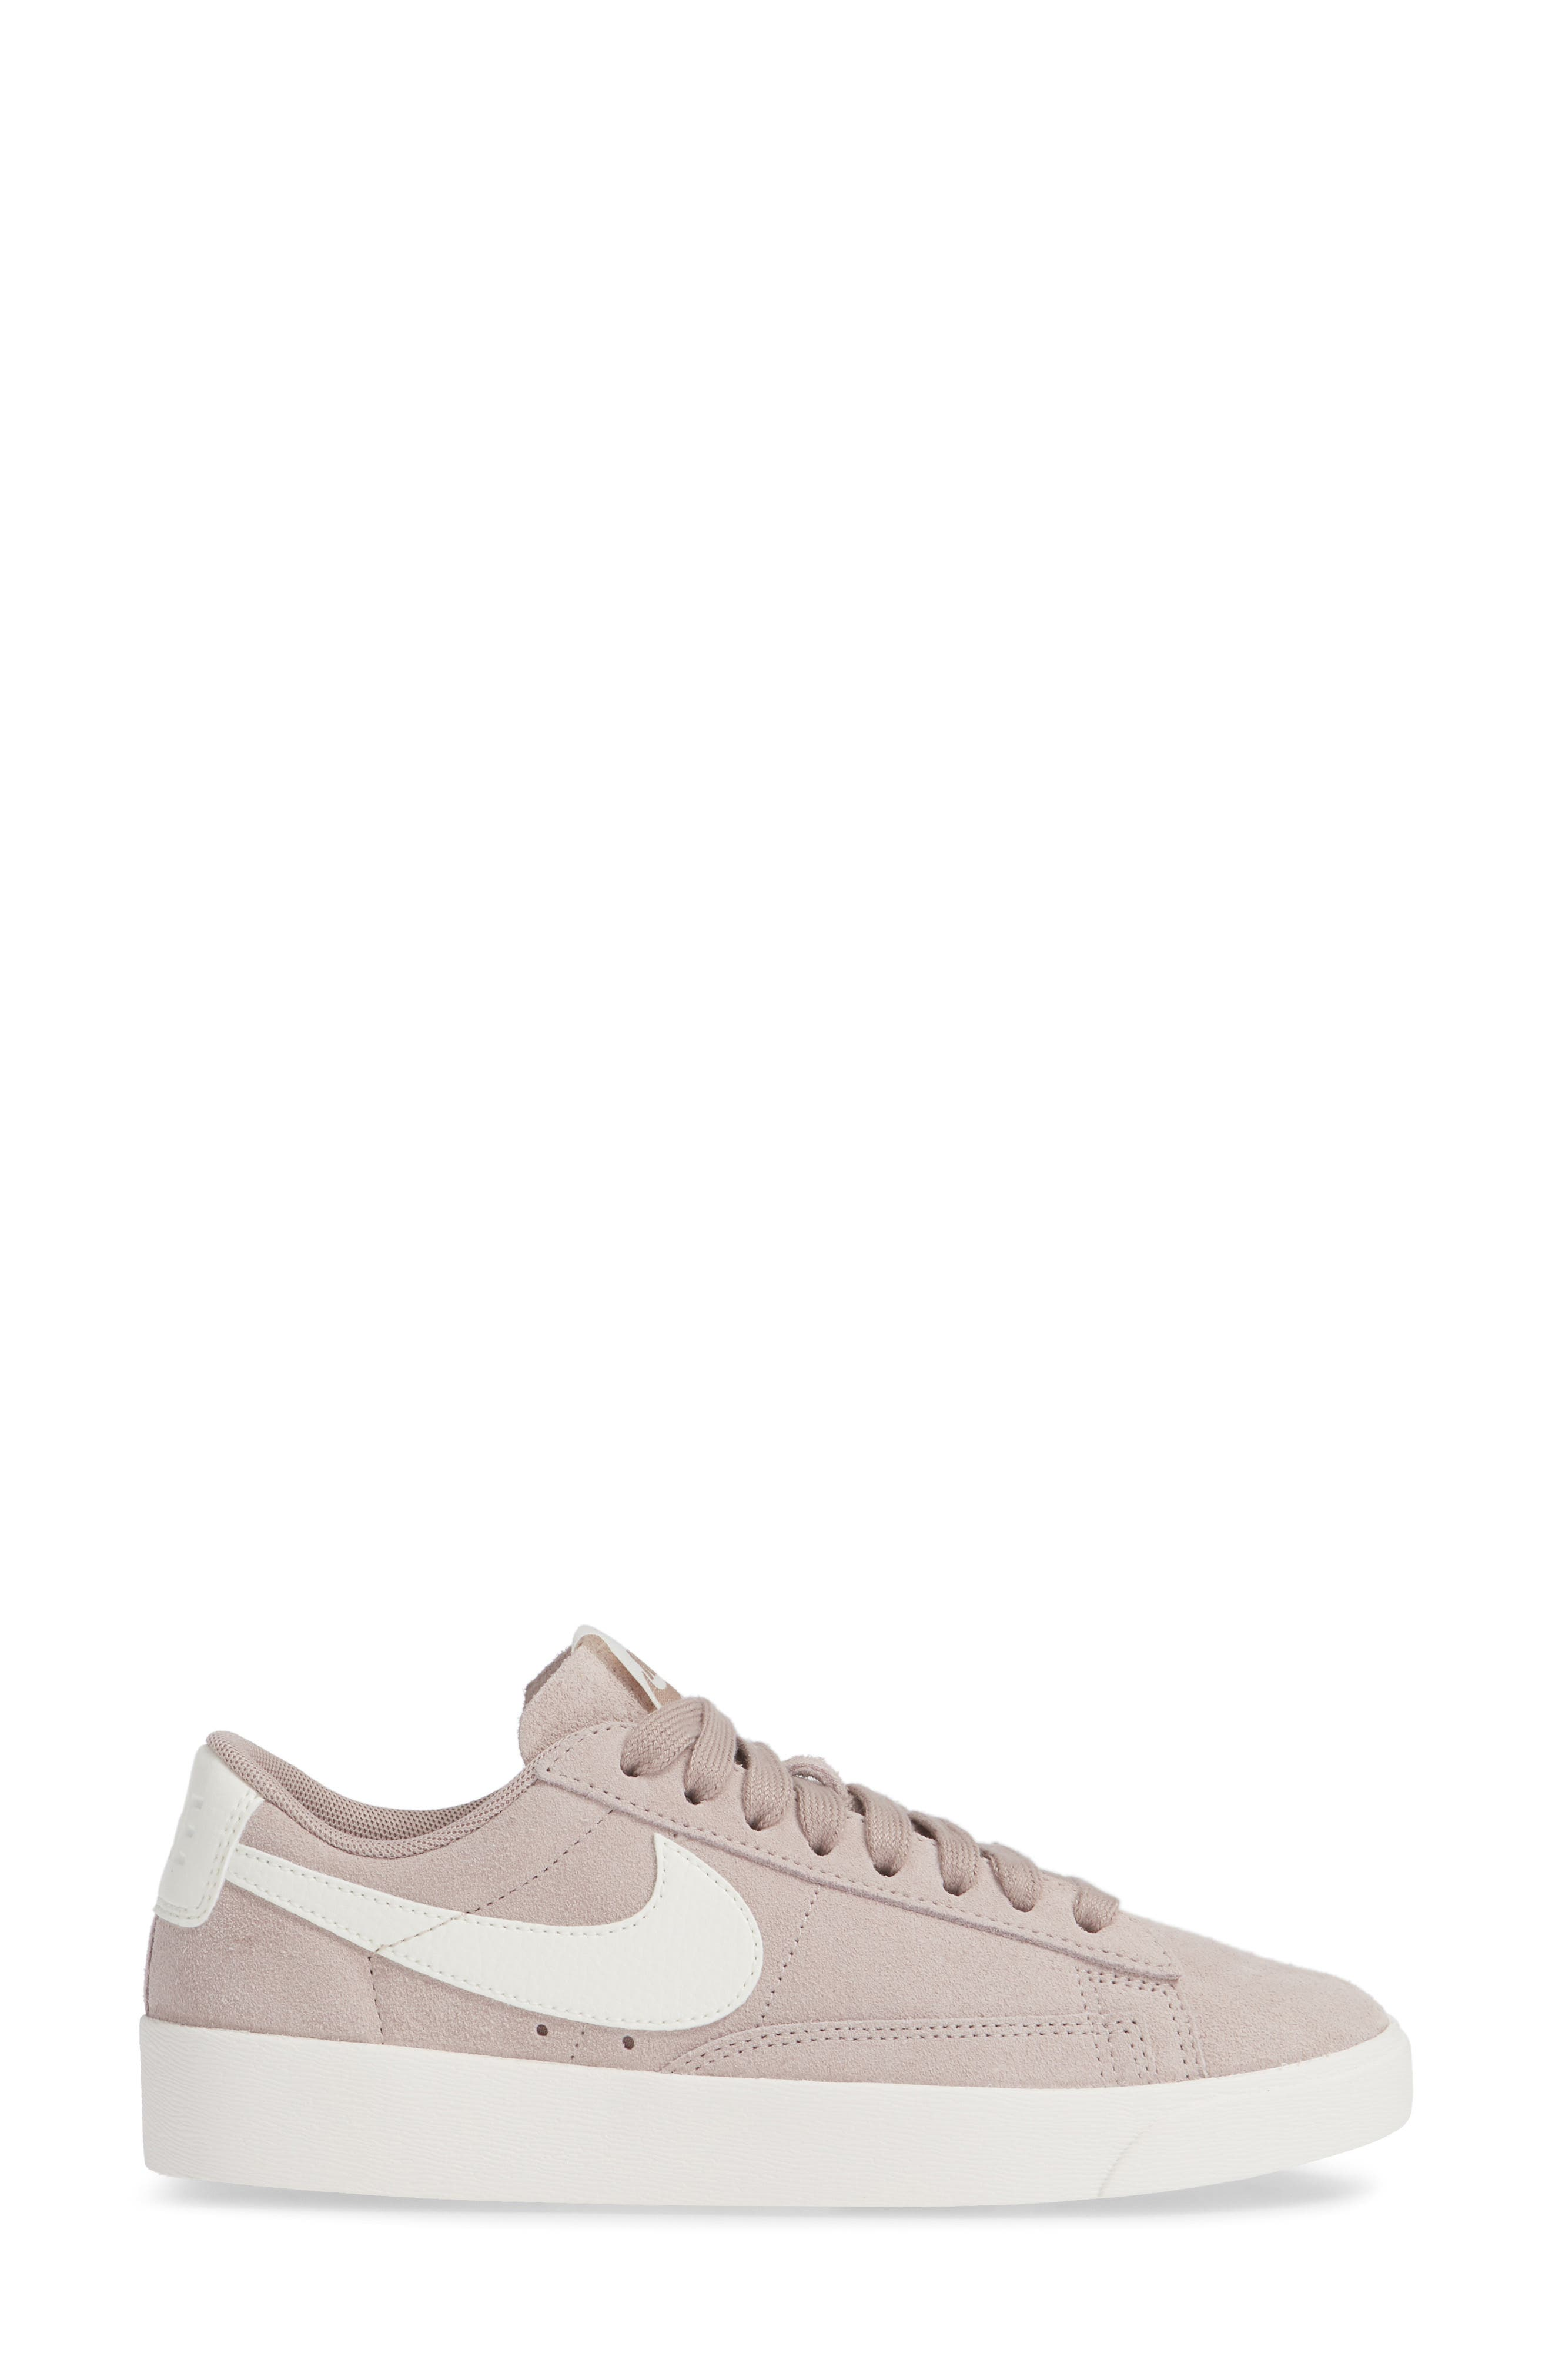 Blazer Low Sneaker,                             Alternate thumbnail 6, color,                             Diffused Taupe/ Sail